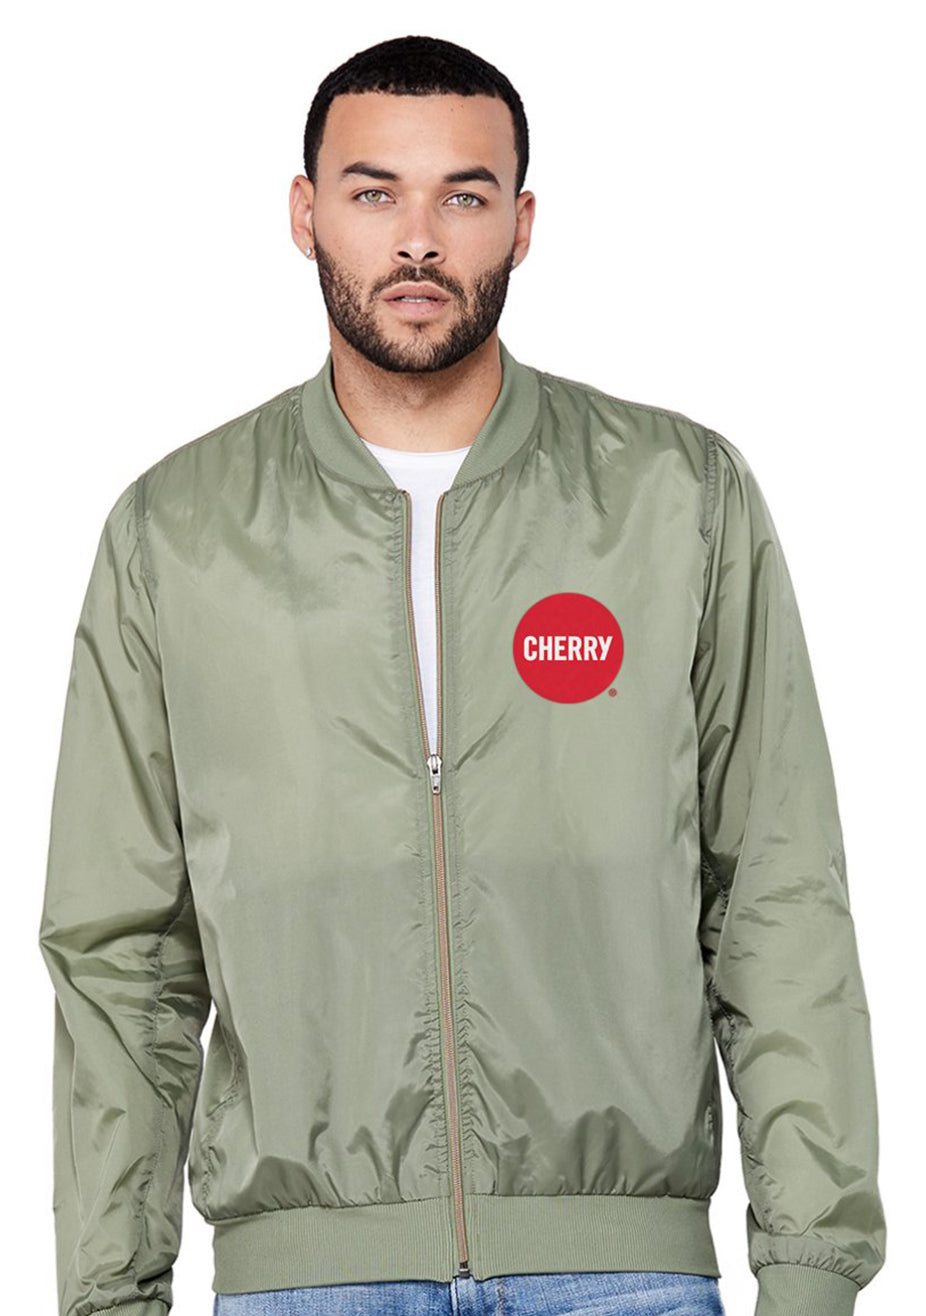 Cherry Bomber Jacket